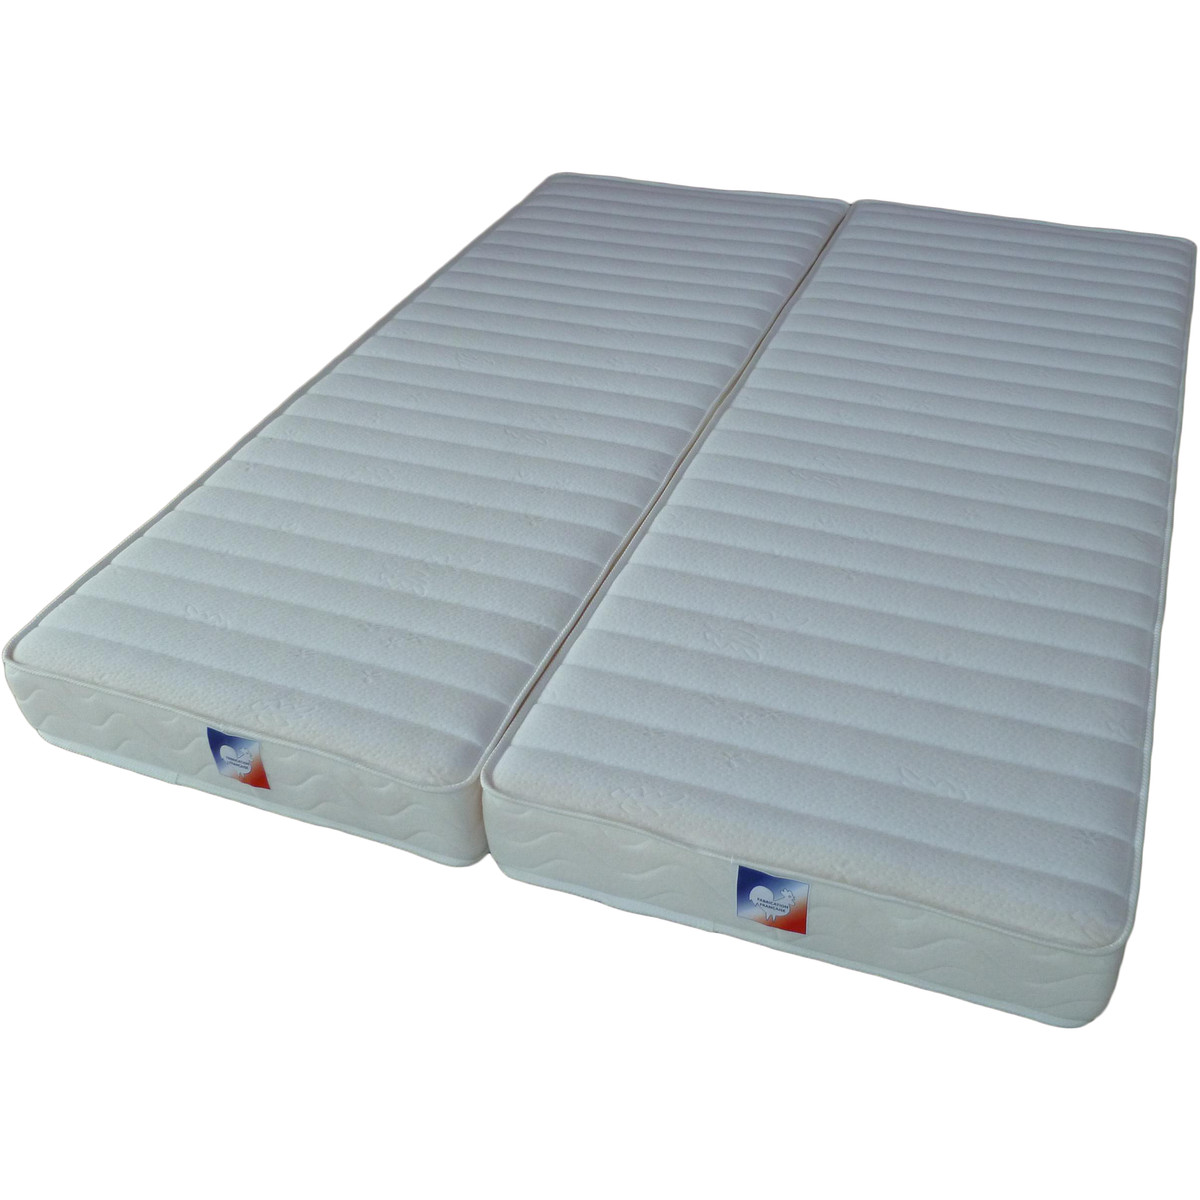 Latex Matelas Matelas En Latex Topiwall